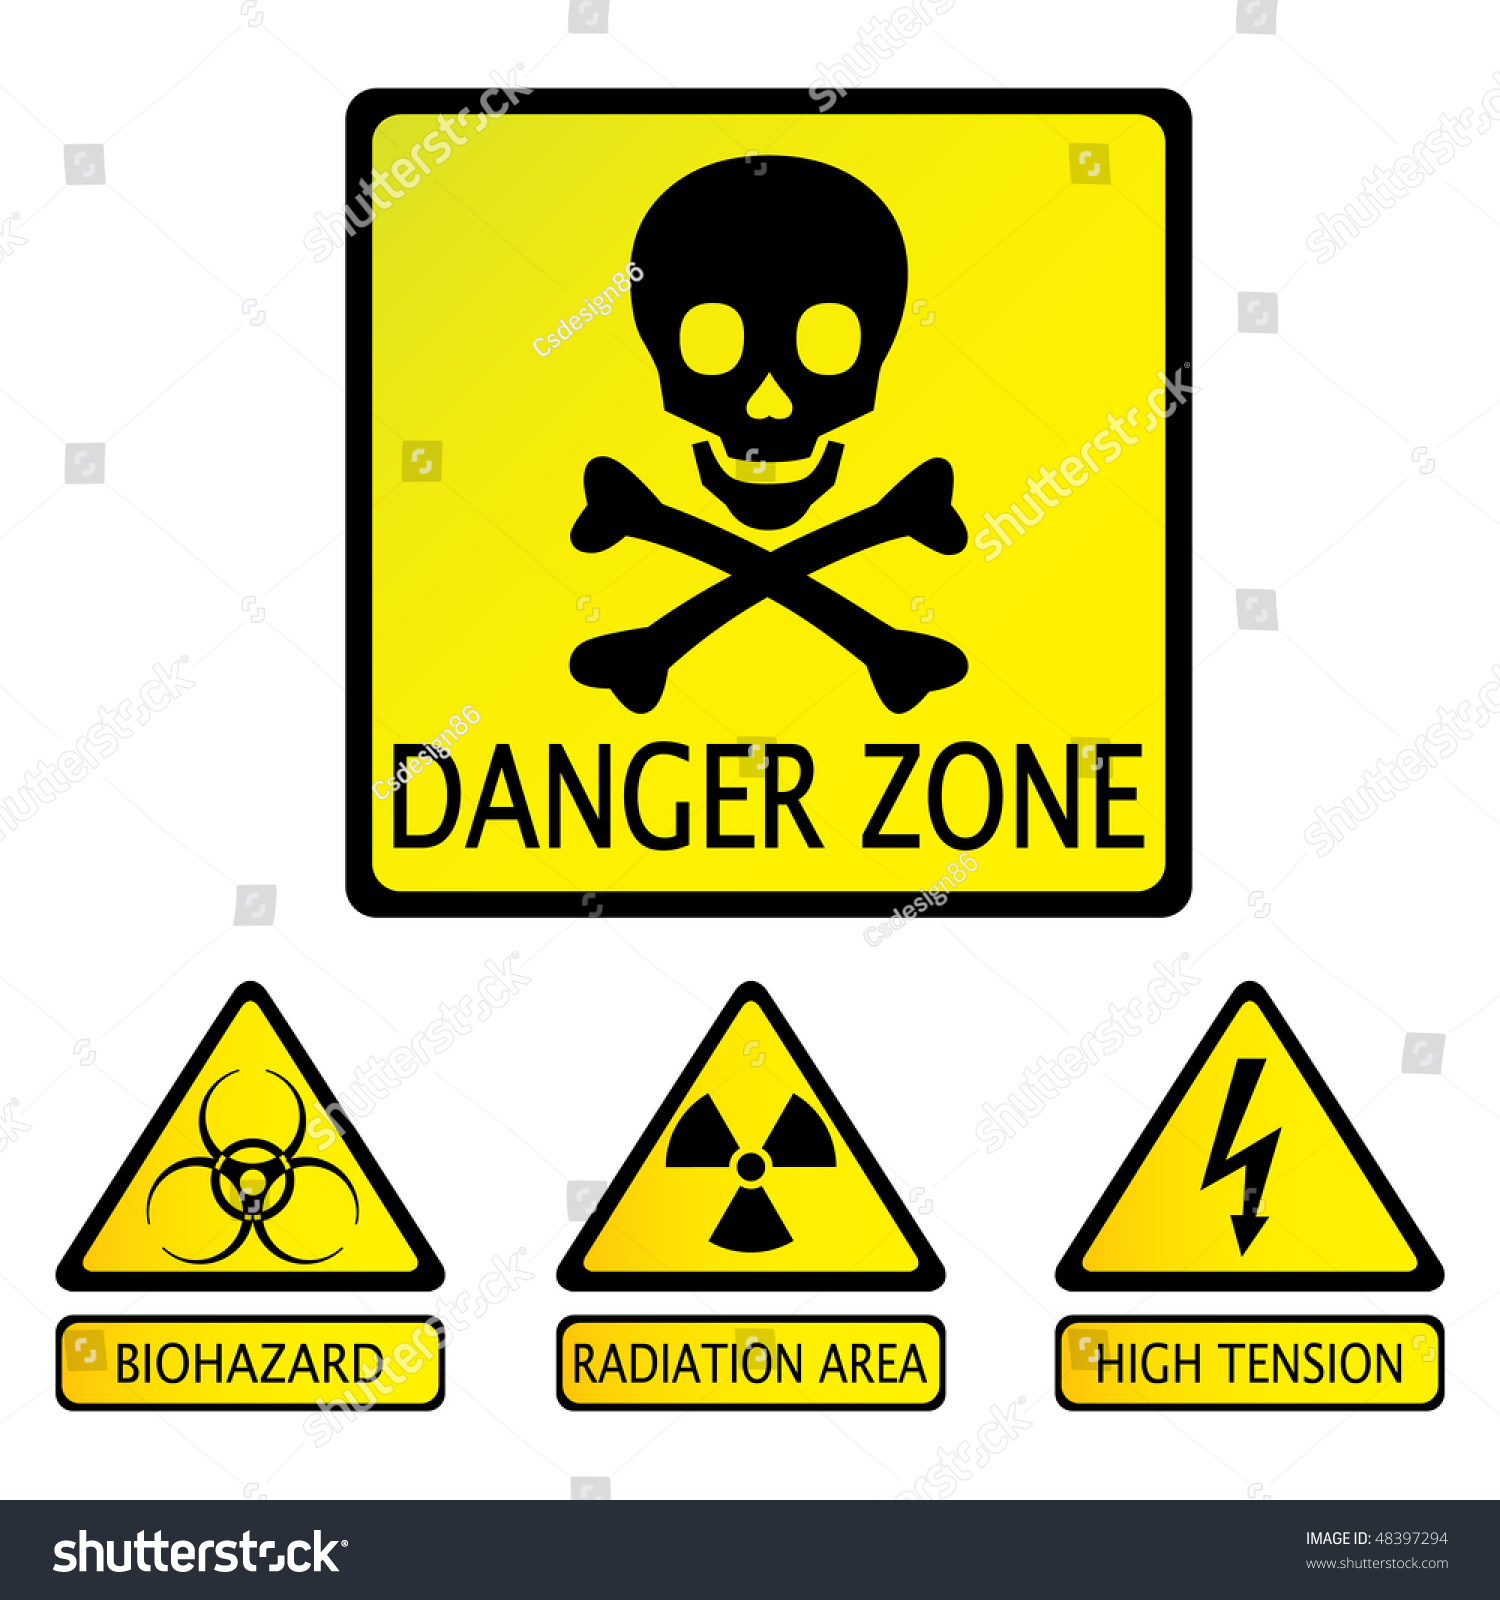 Danger Zone Stock Vector 48397294 - Shutterstock